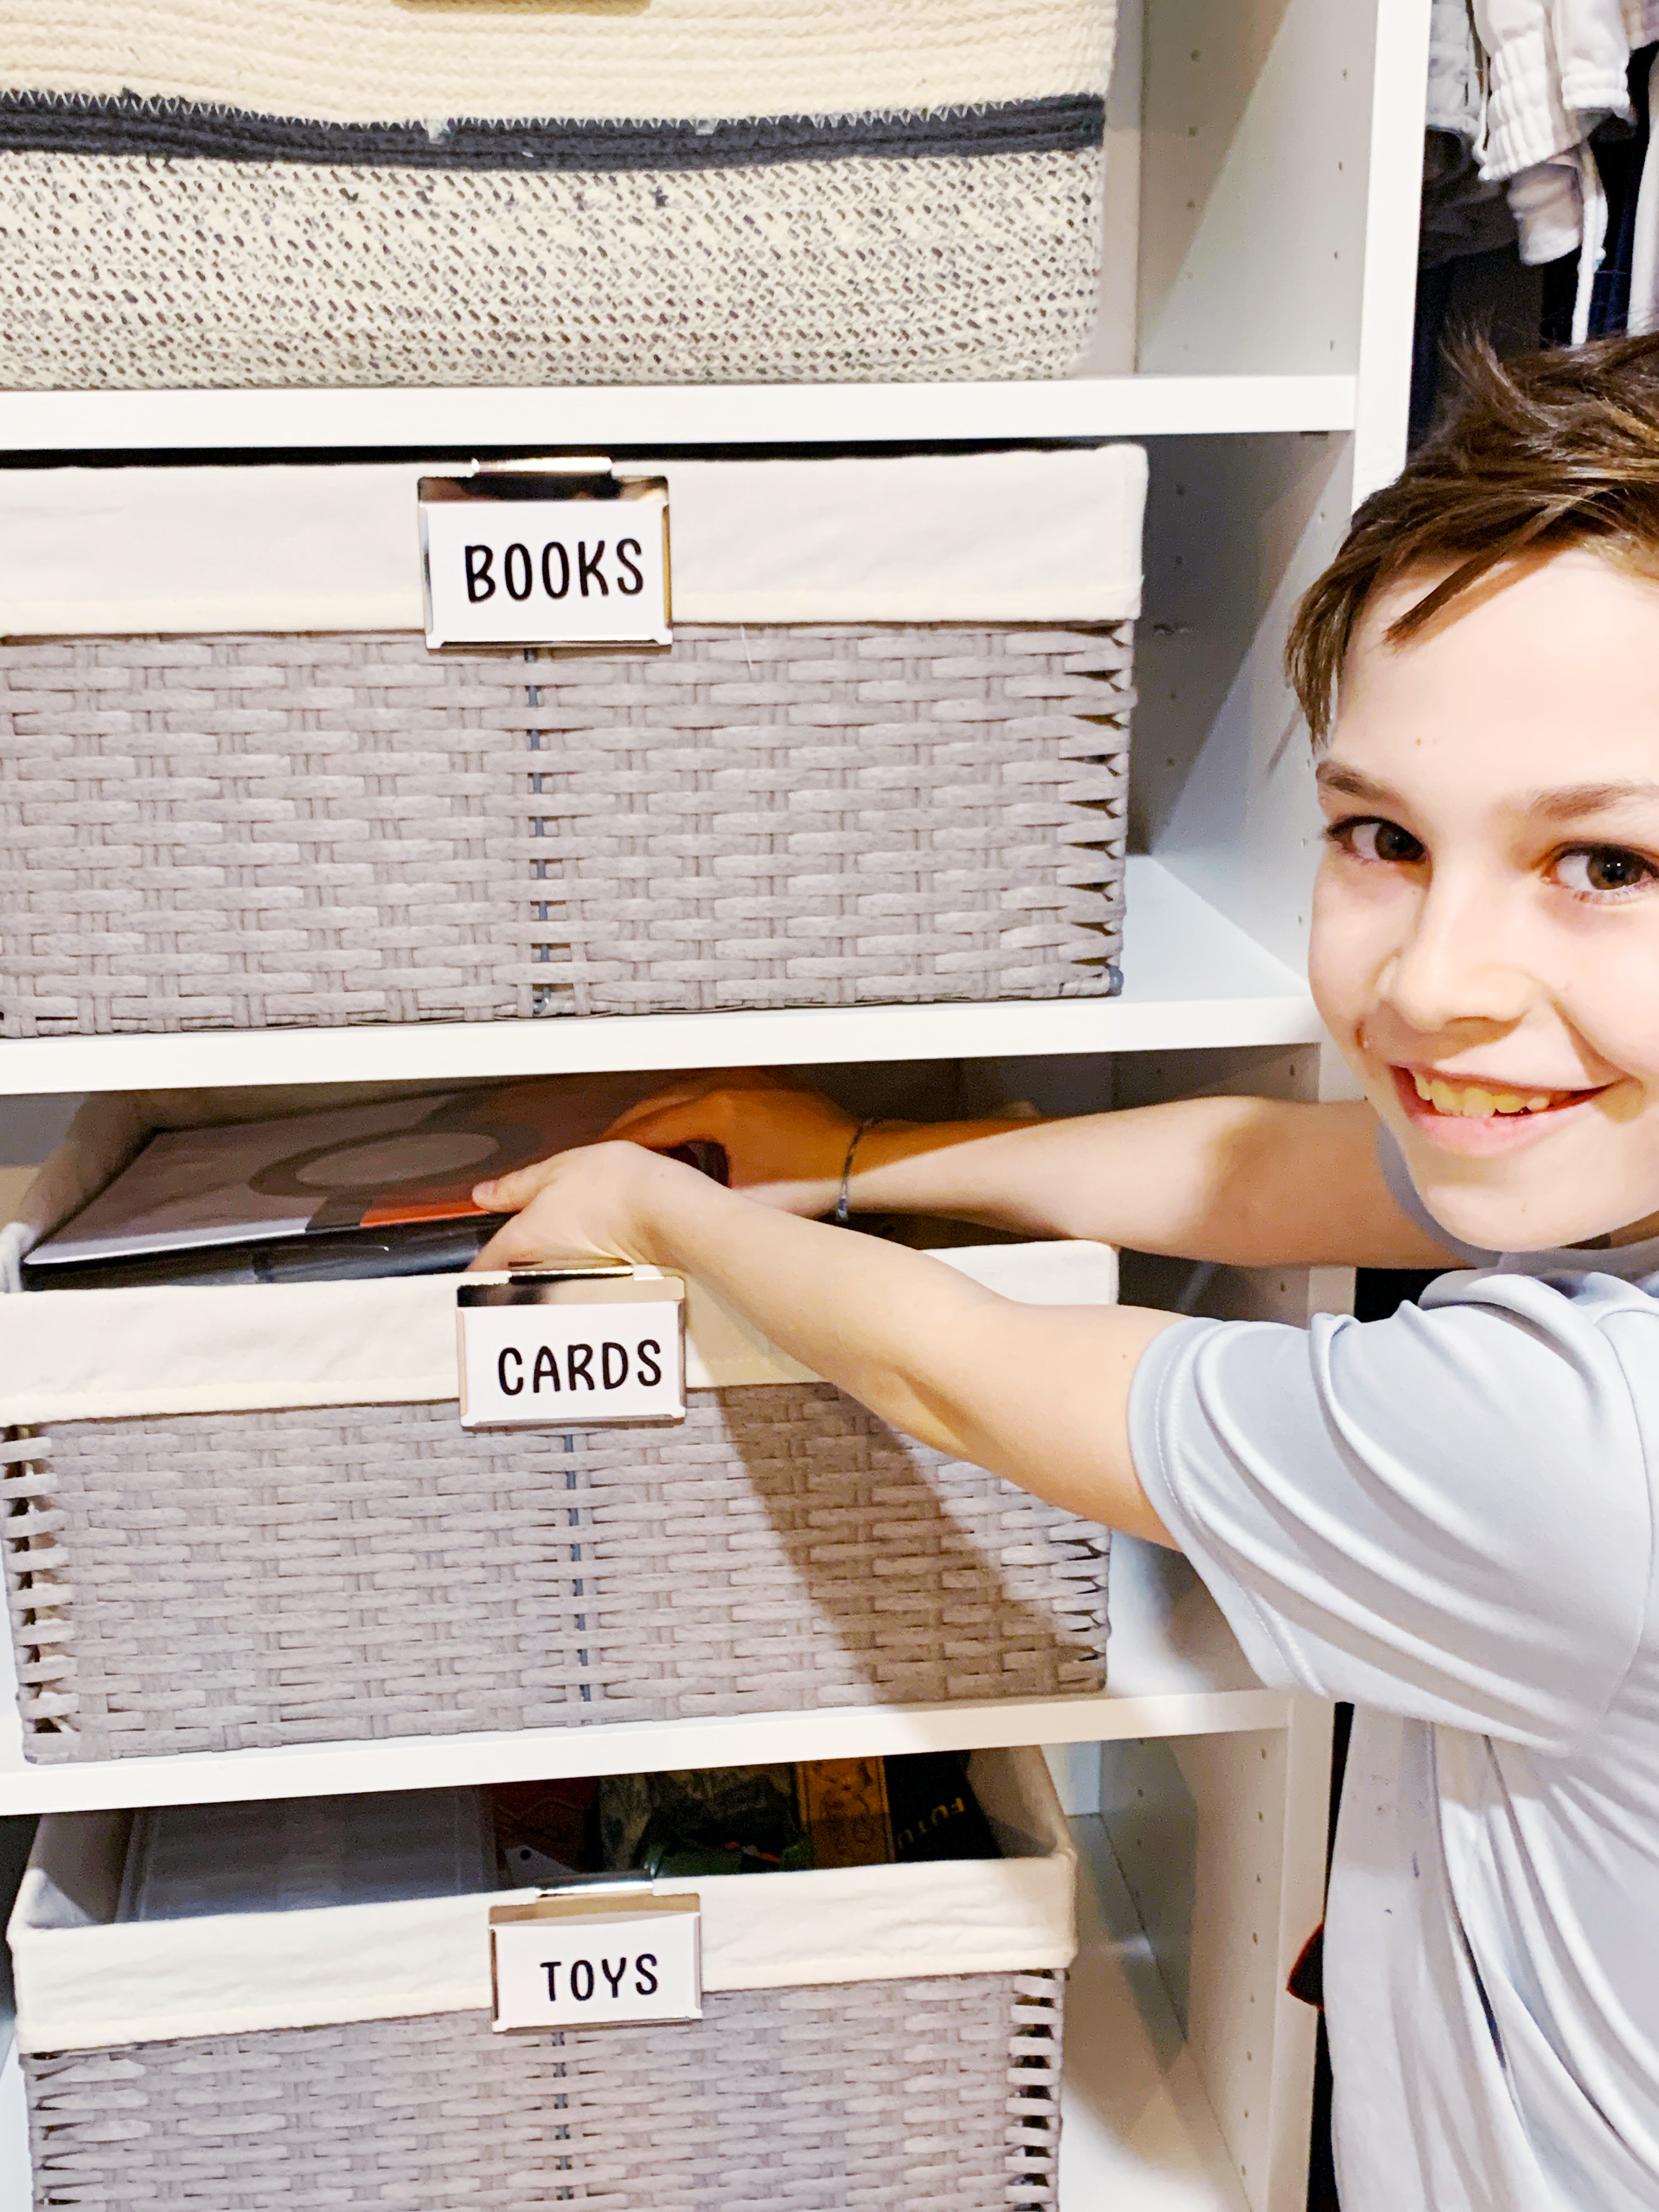 A child helping keep his room tidy with new bins